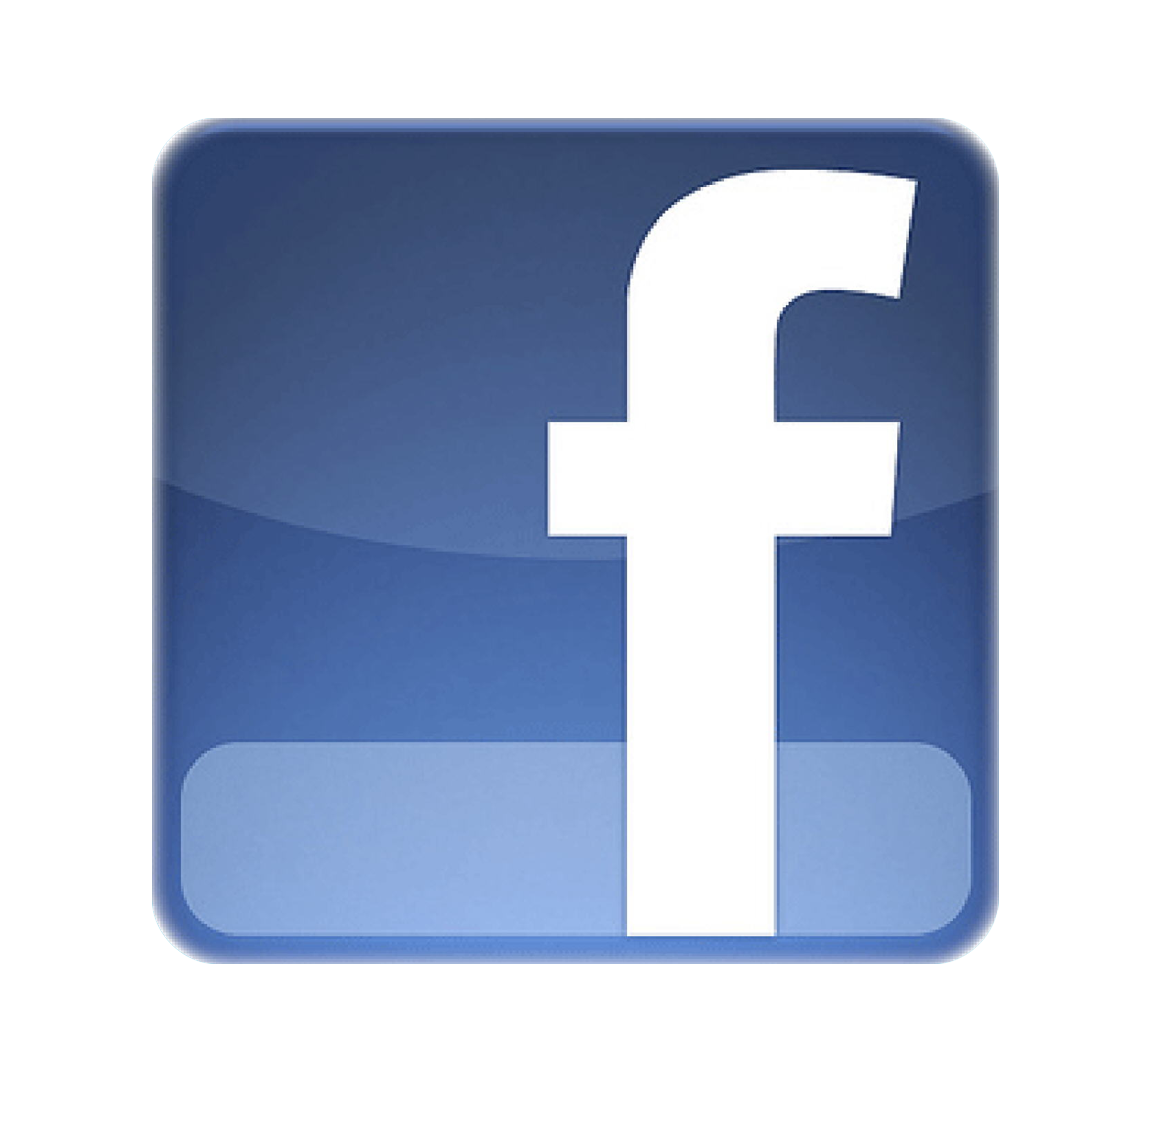 Facebook png logo download. Transparent pictures free icons